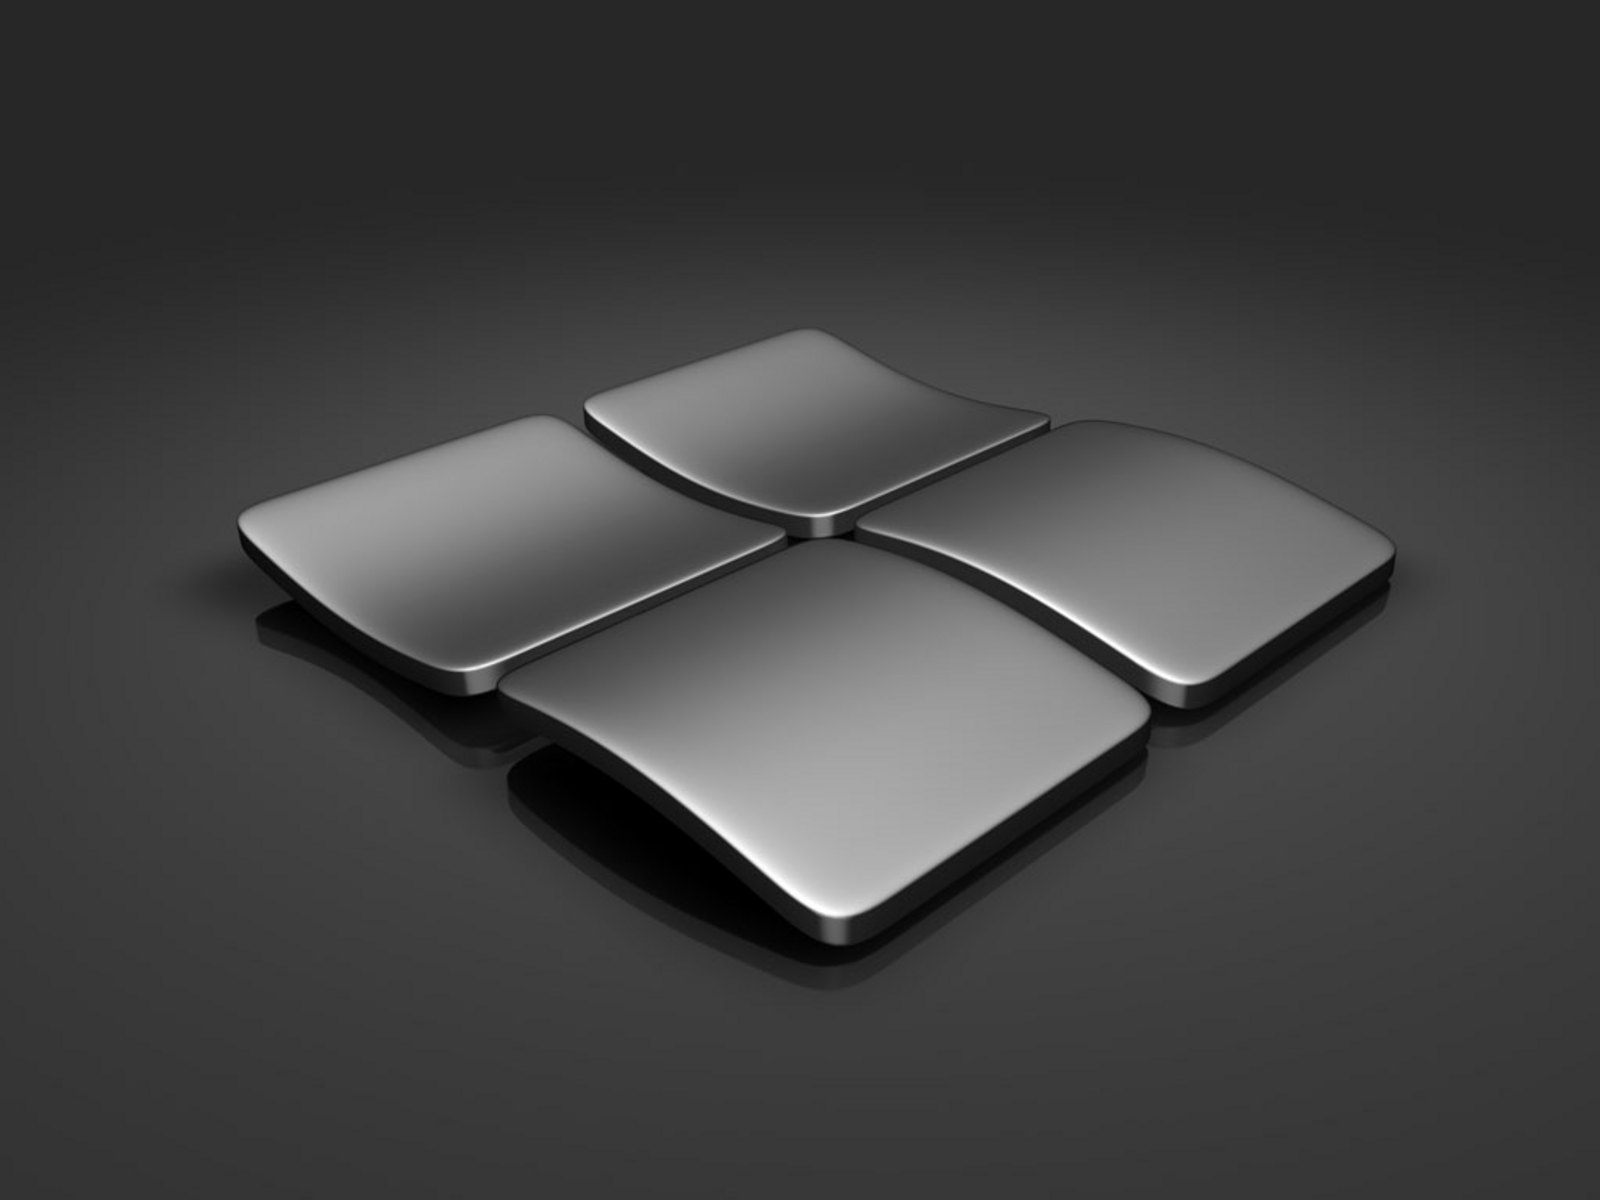 48 Windows 10 Hd Dark Wallpaper On Wallpapersafari